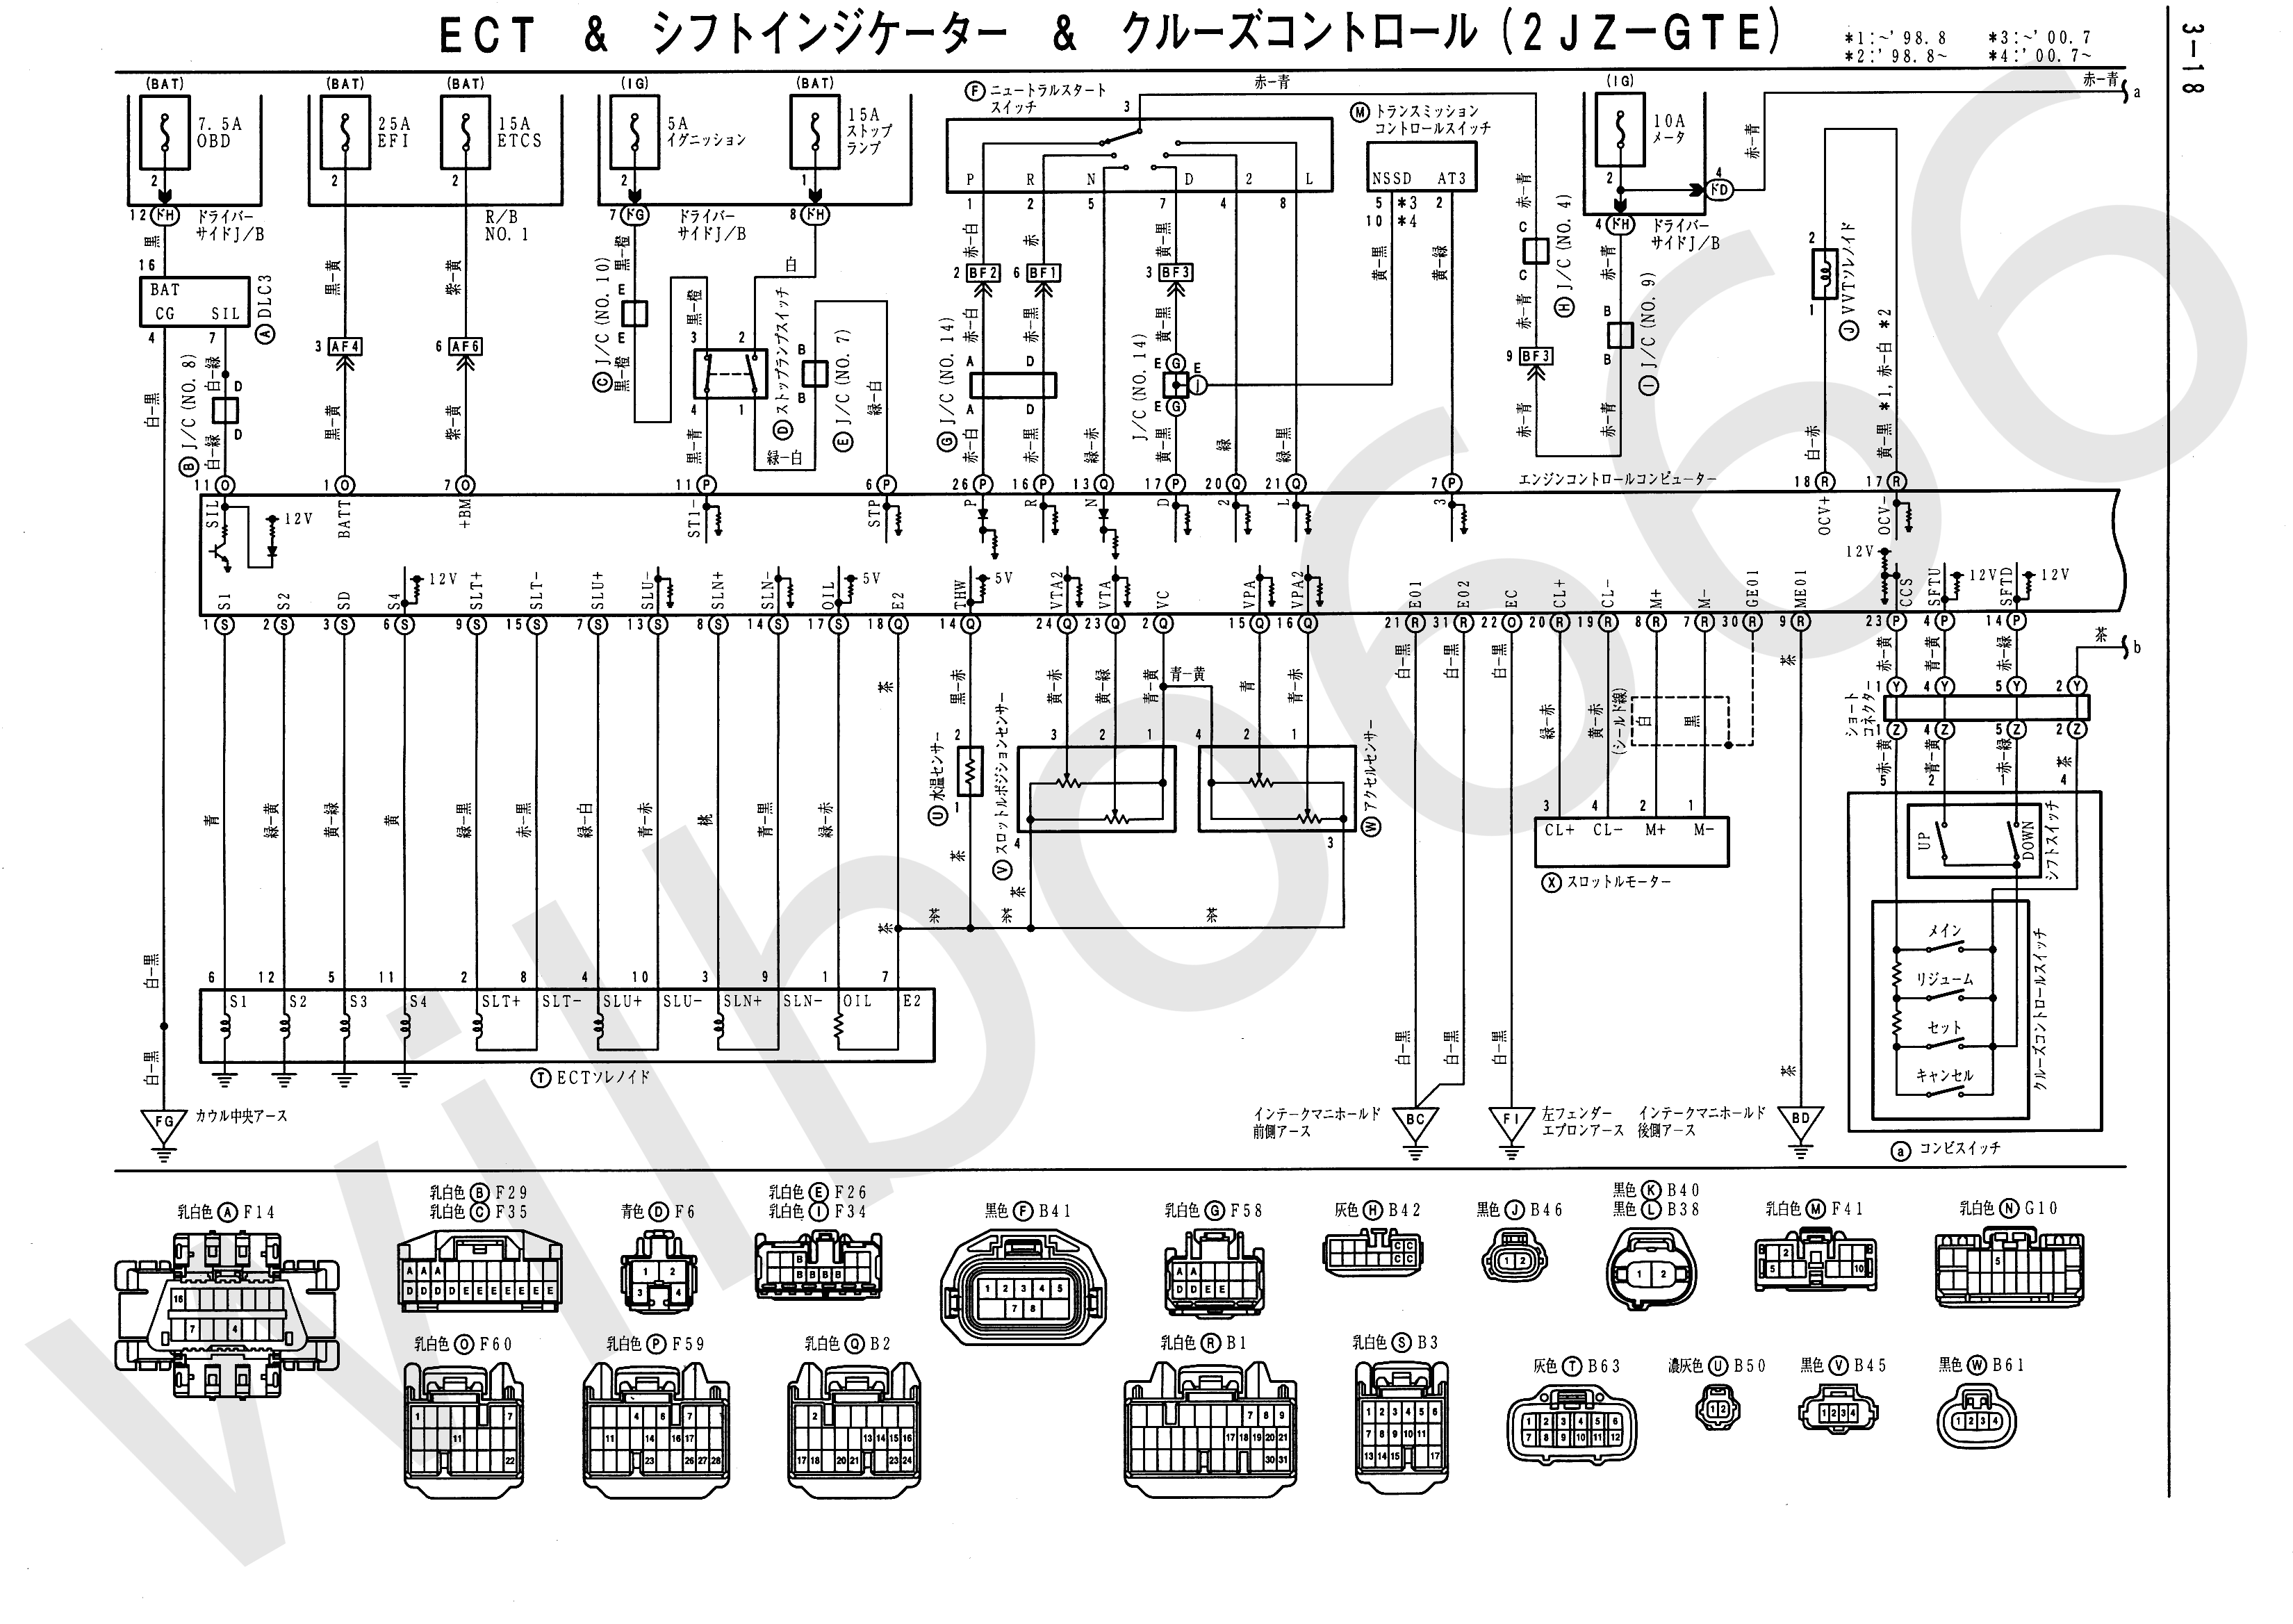 Gs300 Alternator Wiring Diagram - Great Installation Of Wiring Diagram on gm alternator hook up, gm coil pack wiring, 12 volt voltage regulator diagram, gm key fob diagram, toyota alternator diagram, gm alternator circuit, gm cs130 wiring-diagram, gm alternator repair, chevrolet alternator diagram, alternator relay diagram, battery jump diagram, alternator parts diagram, gm alternator connections, gm alternator id chart, gm alternator diagram for 71 chevelle, generator to alternator conversion diagram, gm alternator conversion, gm internal regulator alternator wiring, gm 1 wire alternator diagram, gm alternator pinout,